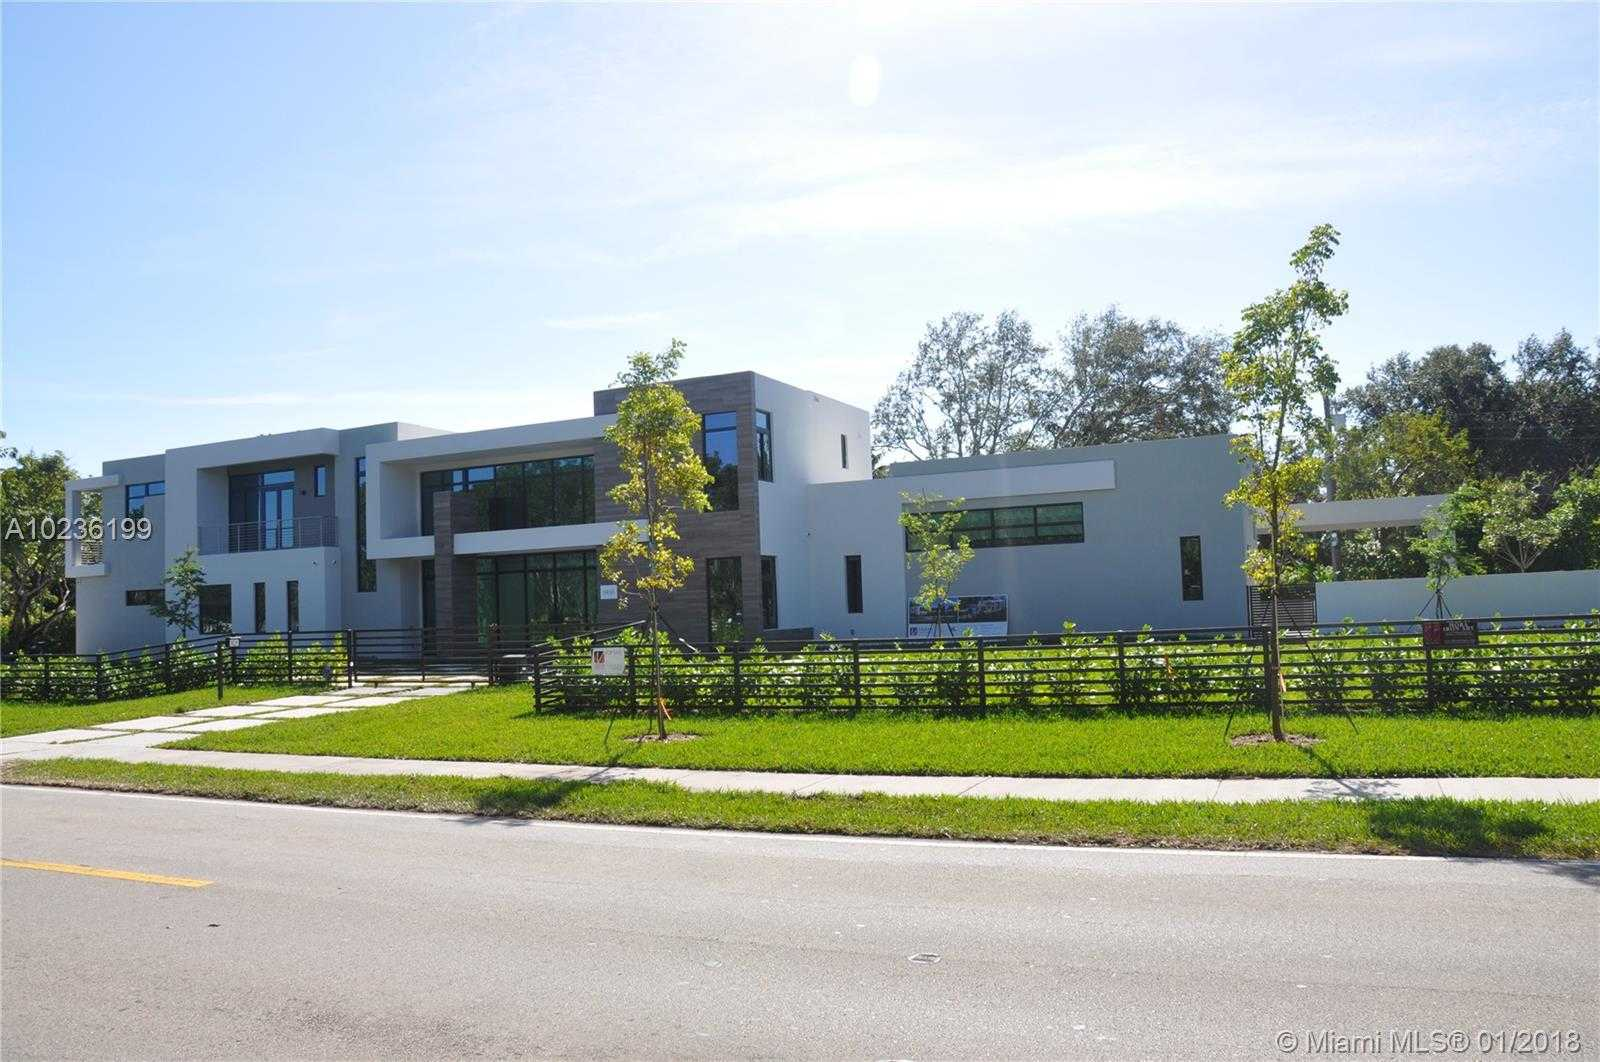 $4,250,000 - 7Br/8Ba -  for Sale in Briercliff Sub Pinecrest, Pinecrest